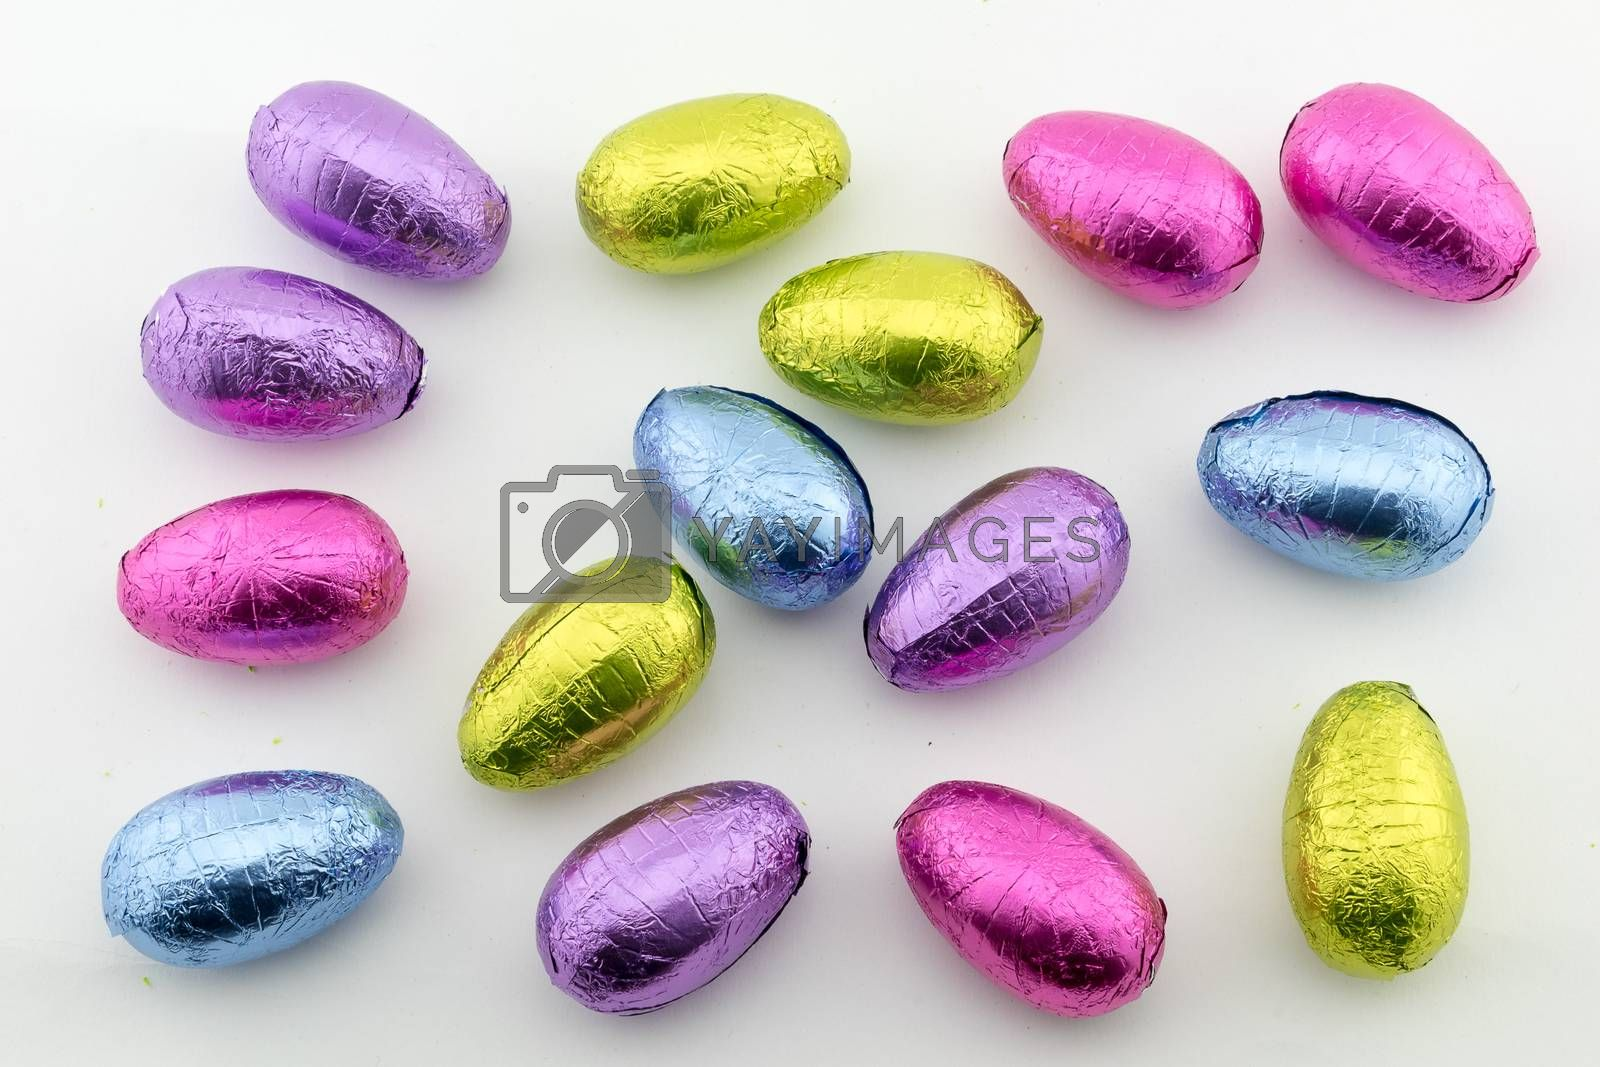 Multi-coloured foil covered chocolate Easter eggs